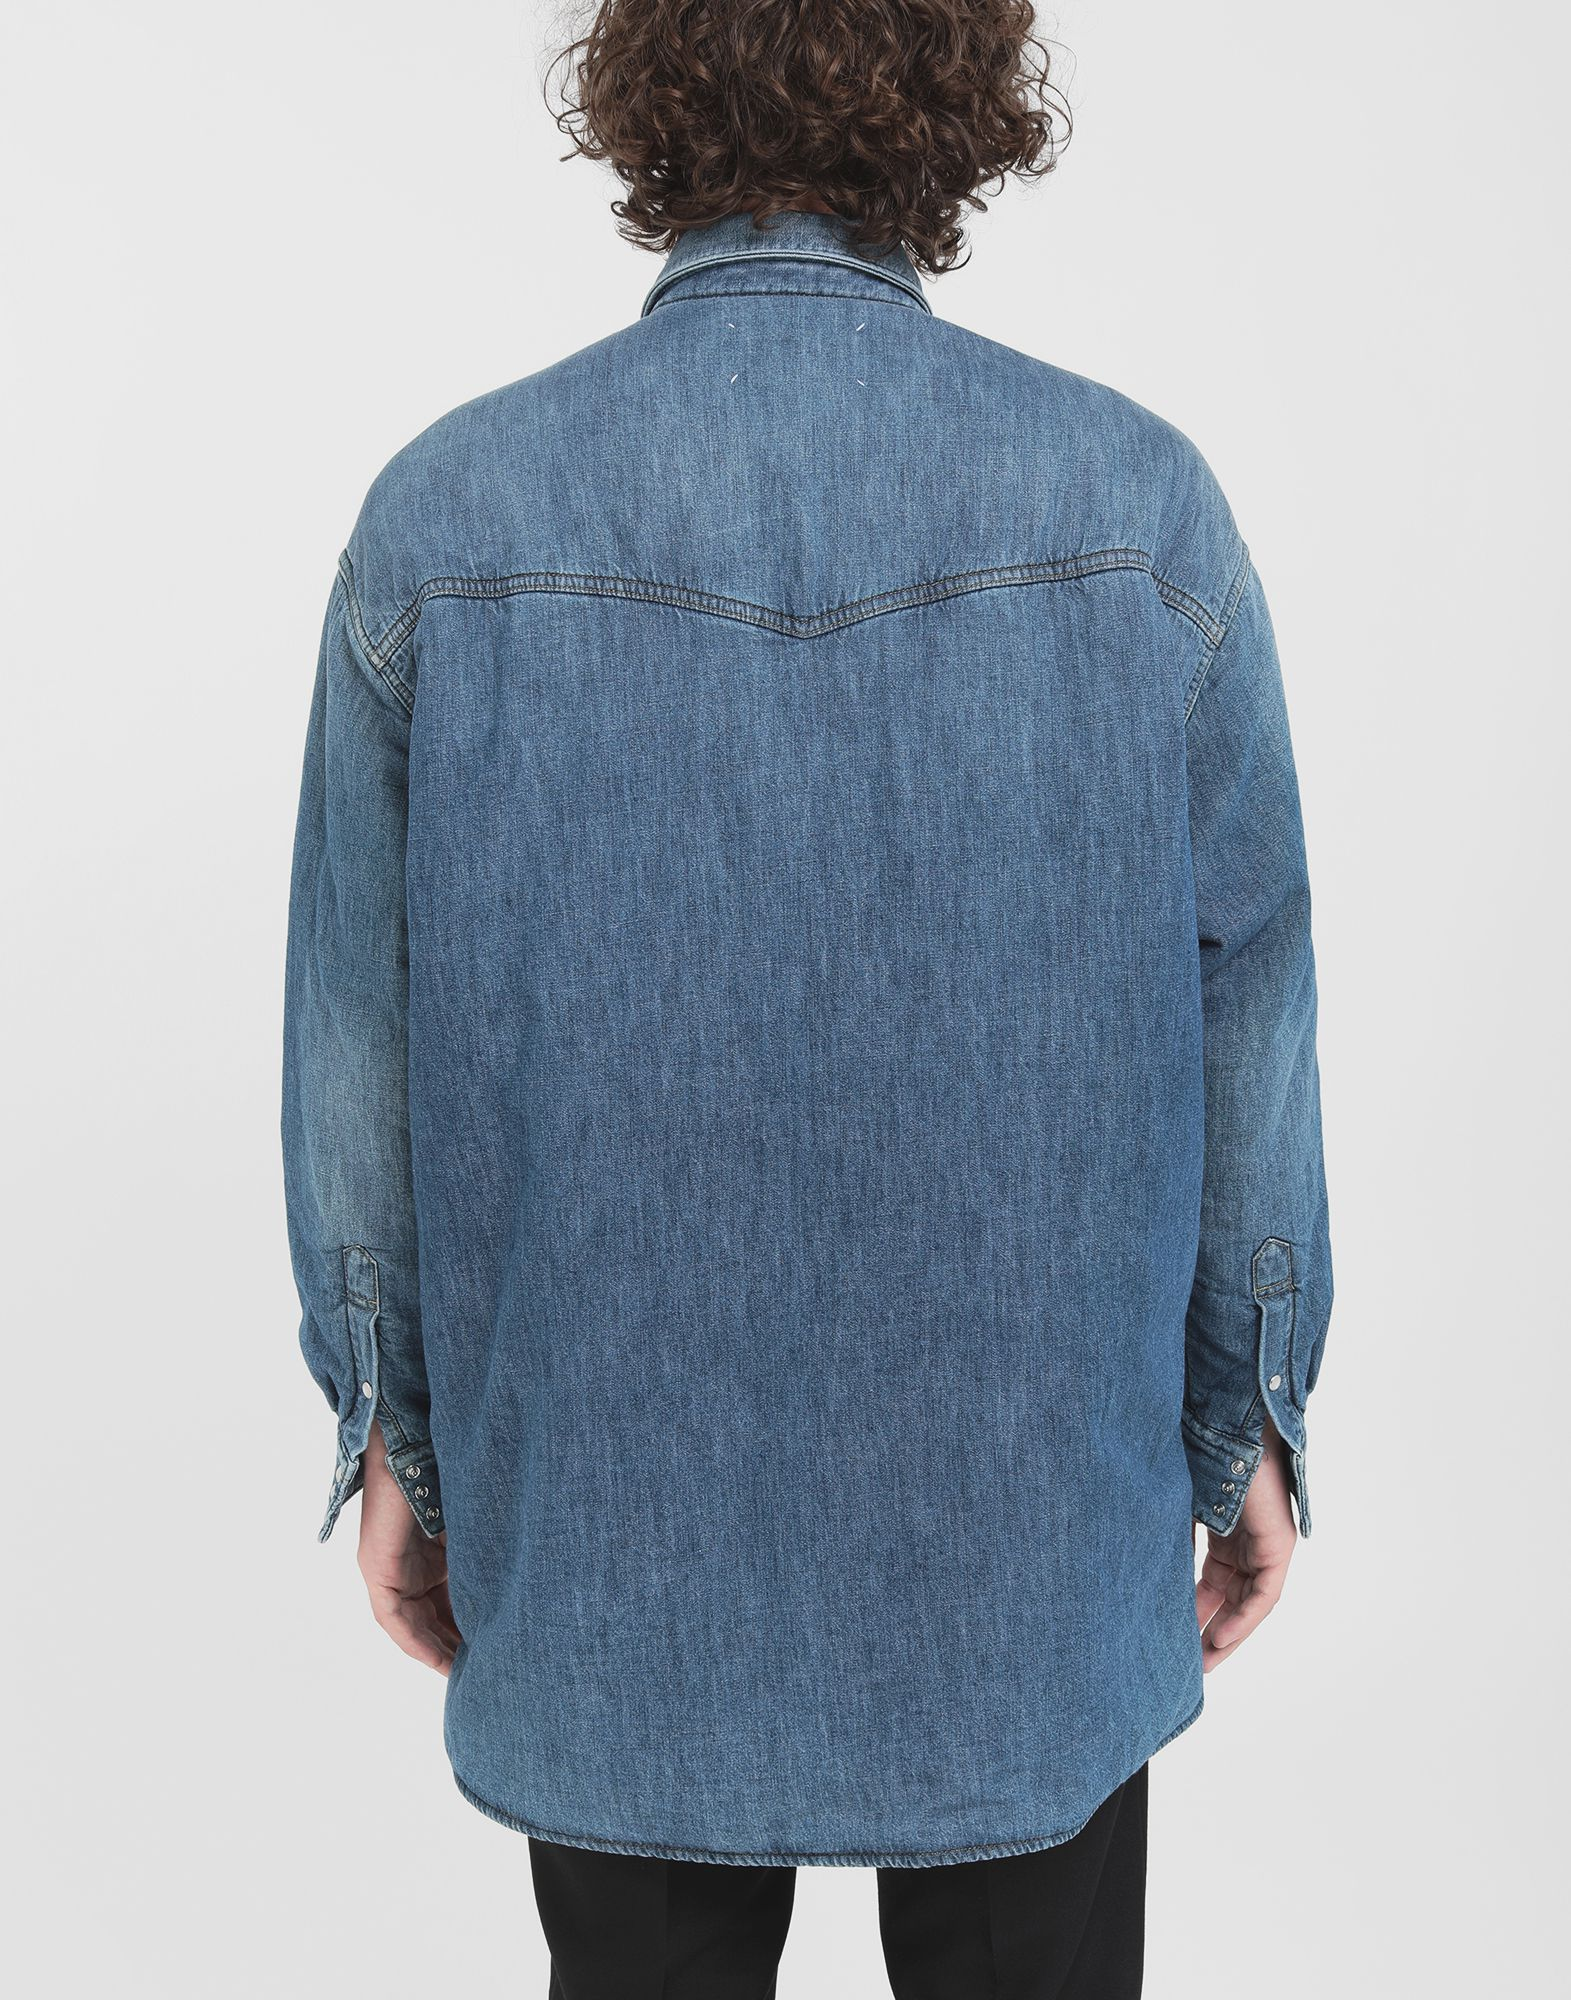 MAISON MARGIELA Oversized denim shirt Long sleeve shirt Man e